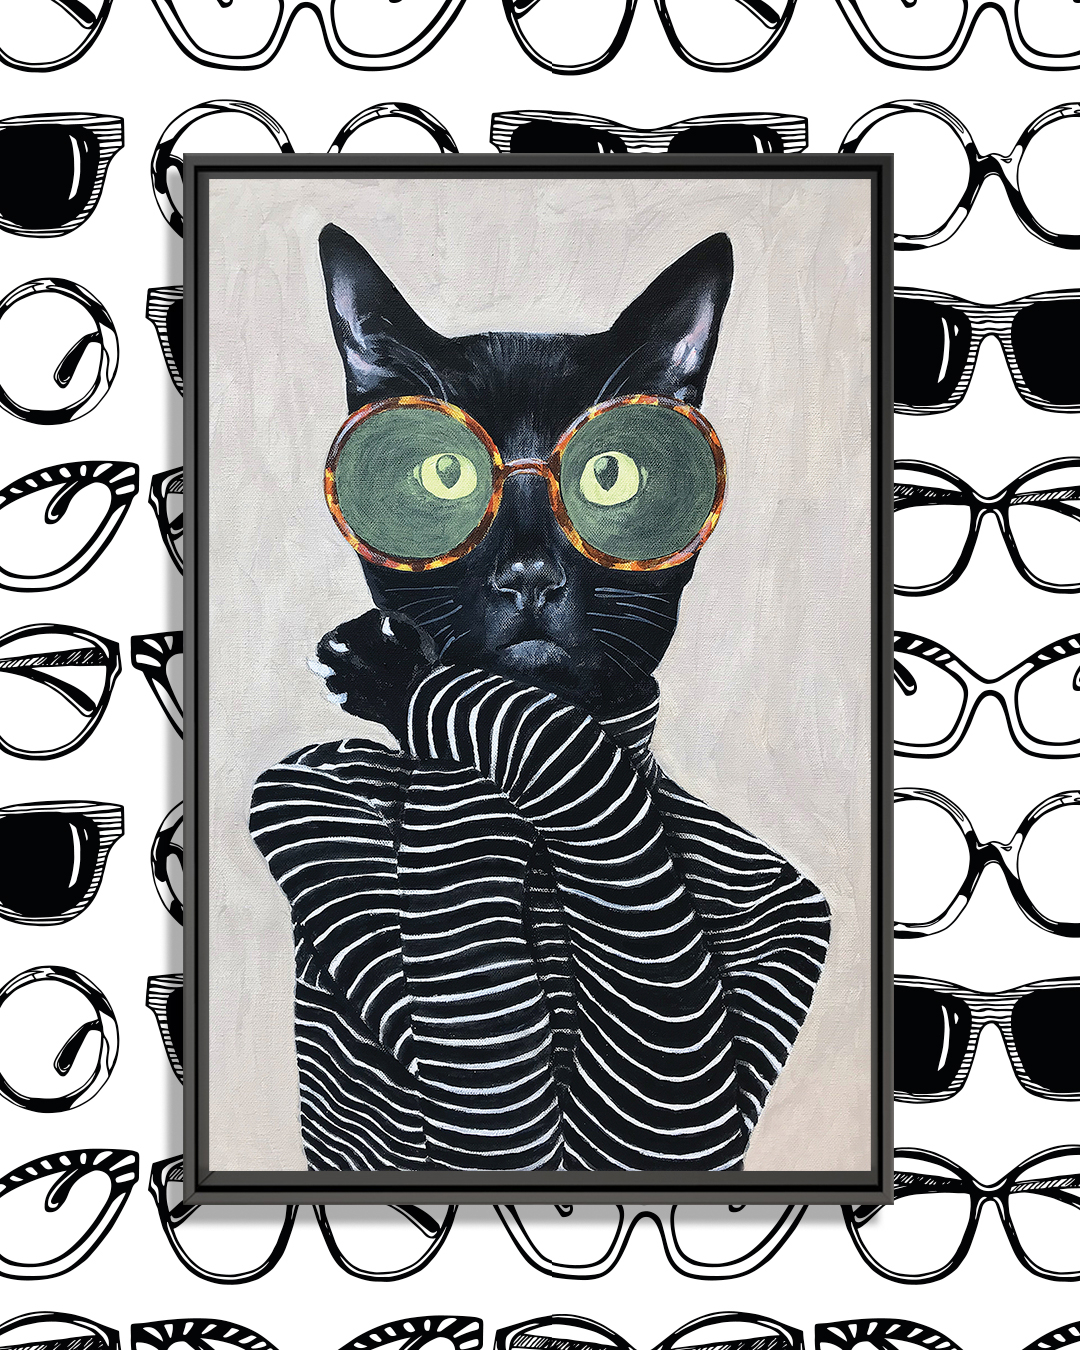 black cat wearing striped turtle neck and round glasses